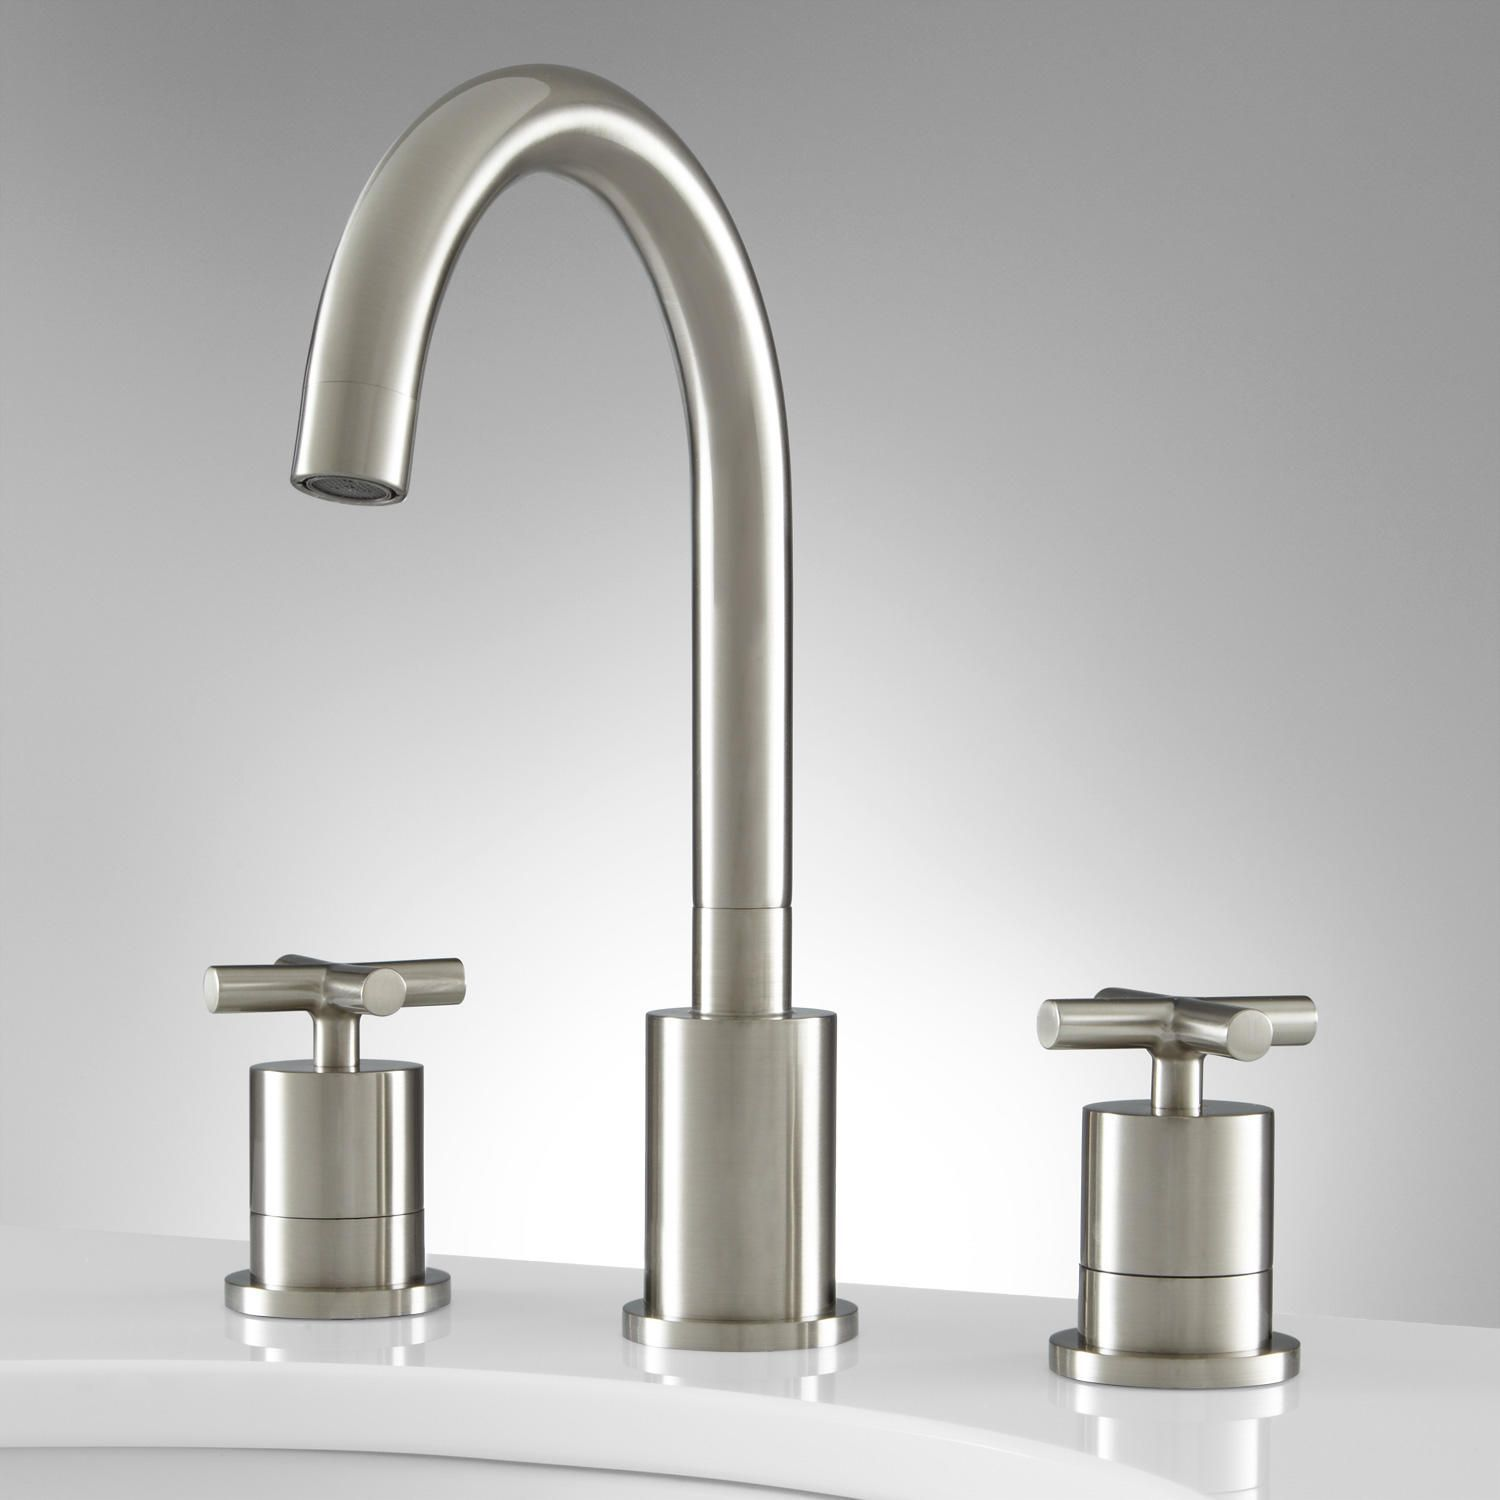 Exira Widespread Bathroom Faucet  Overflow  Brushed Nickel Delectable Brushed Nickel Bathroom Faucets Design Inspiration